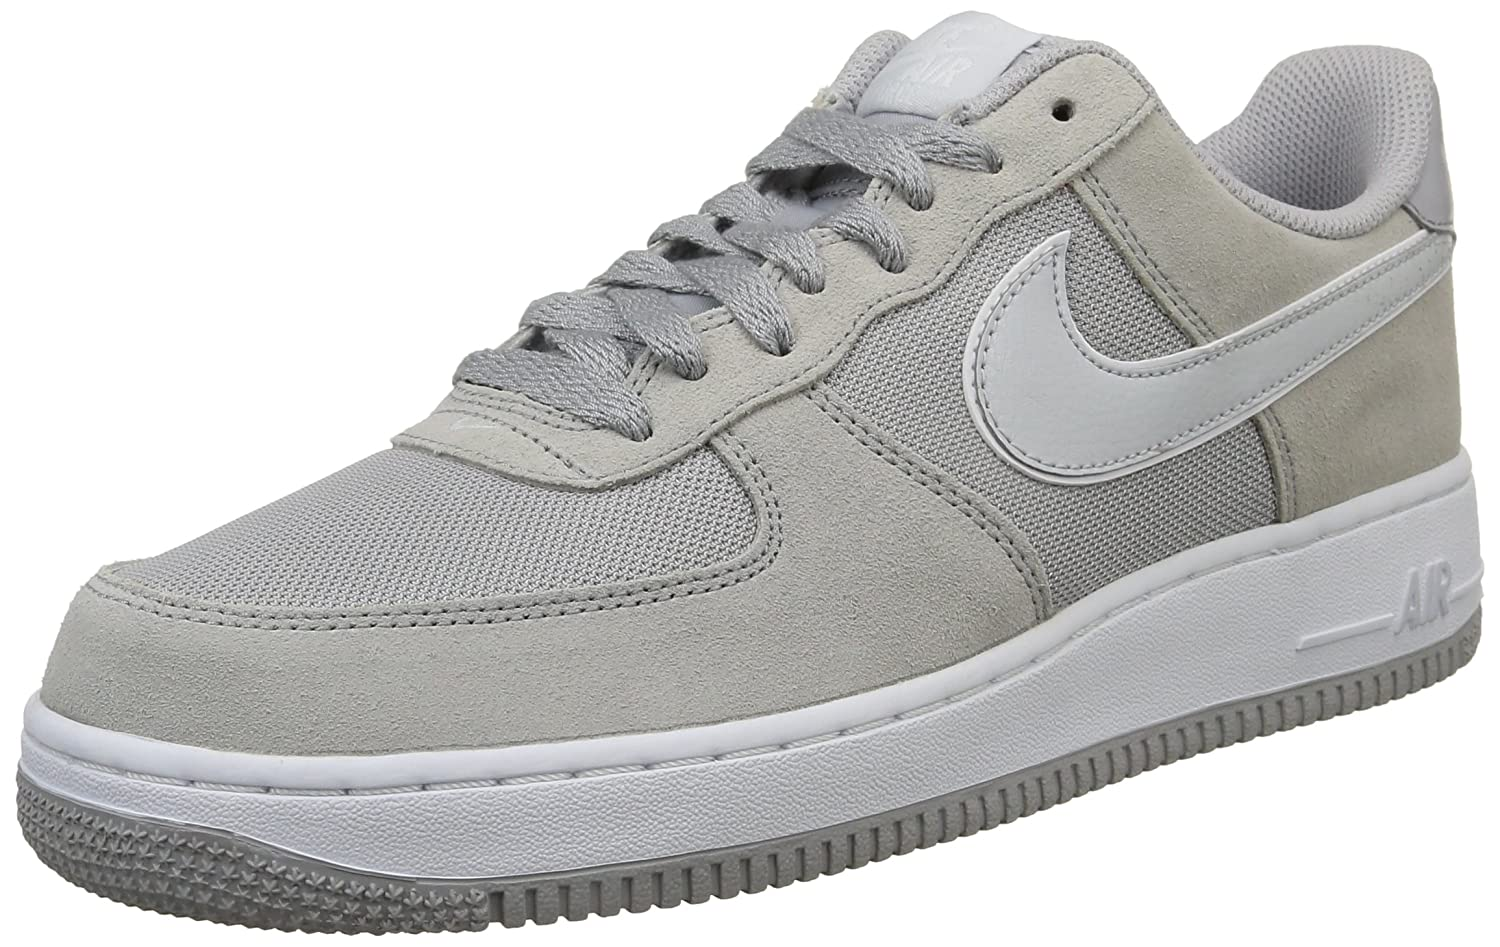 Nike air Force 1 Mens Trainers 488298 Sneakers Shoes (UK 7